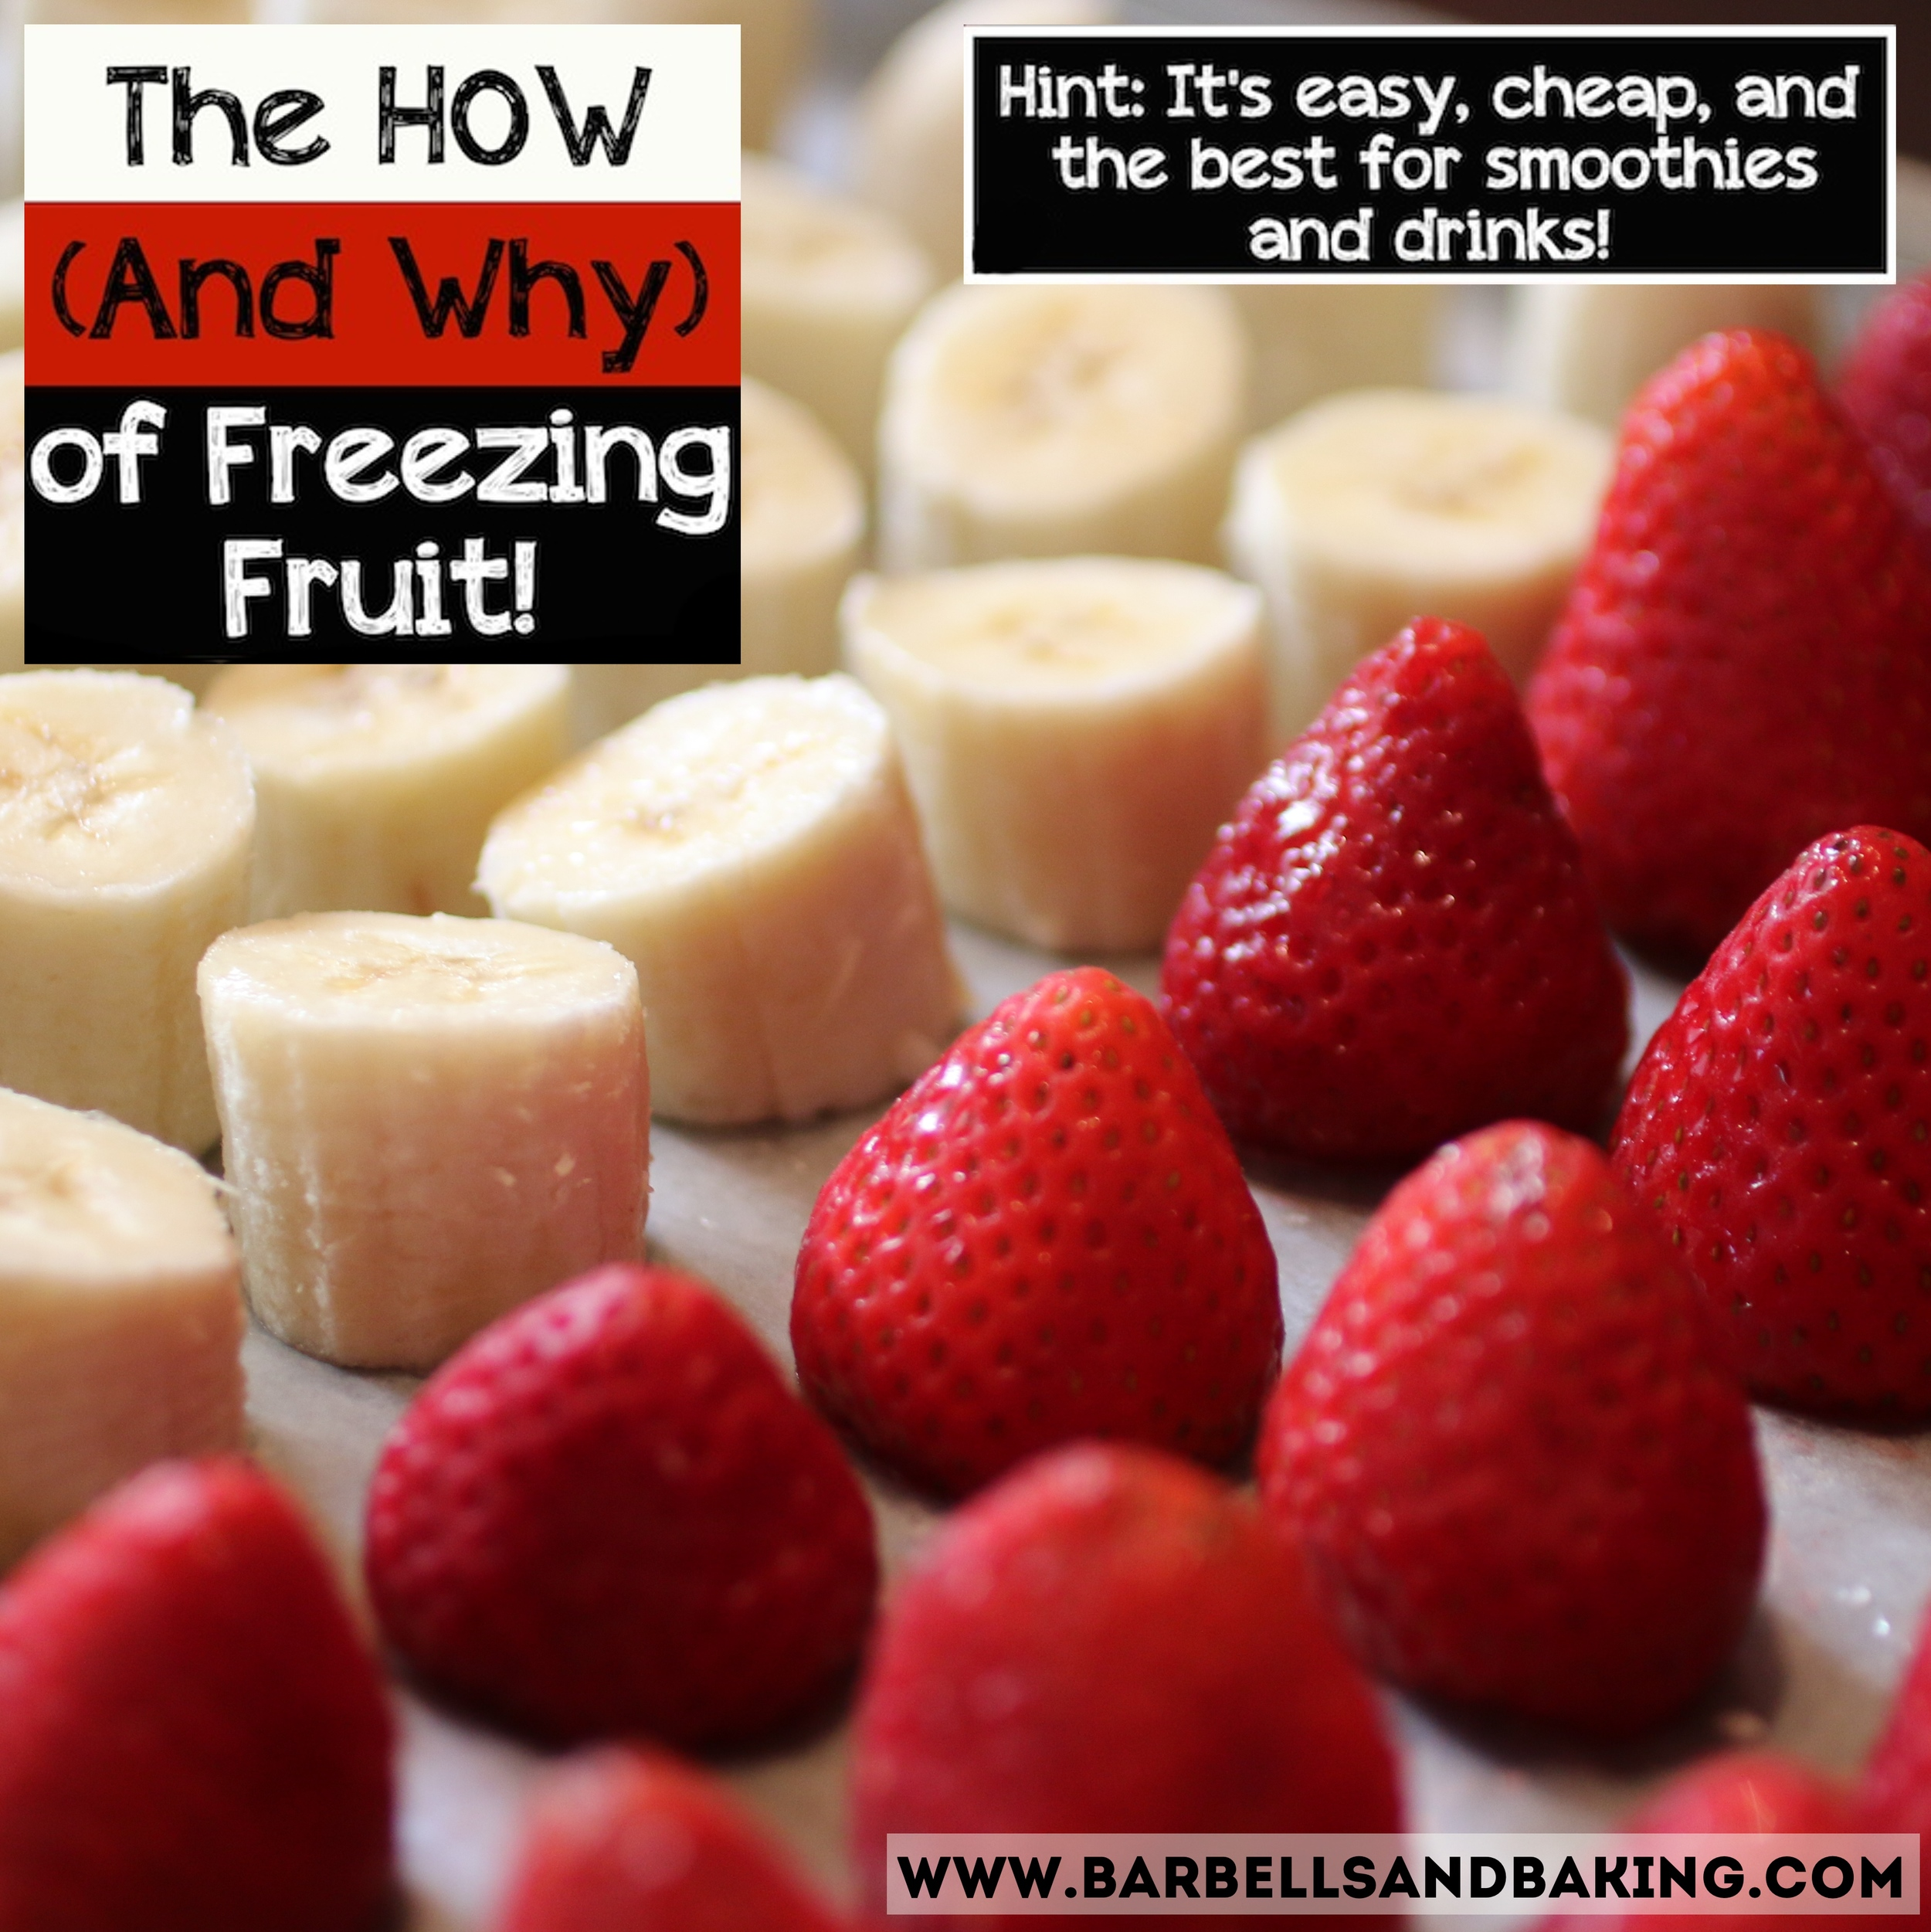 Learn how to properly freeze fruit for smoothies and drinks!!